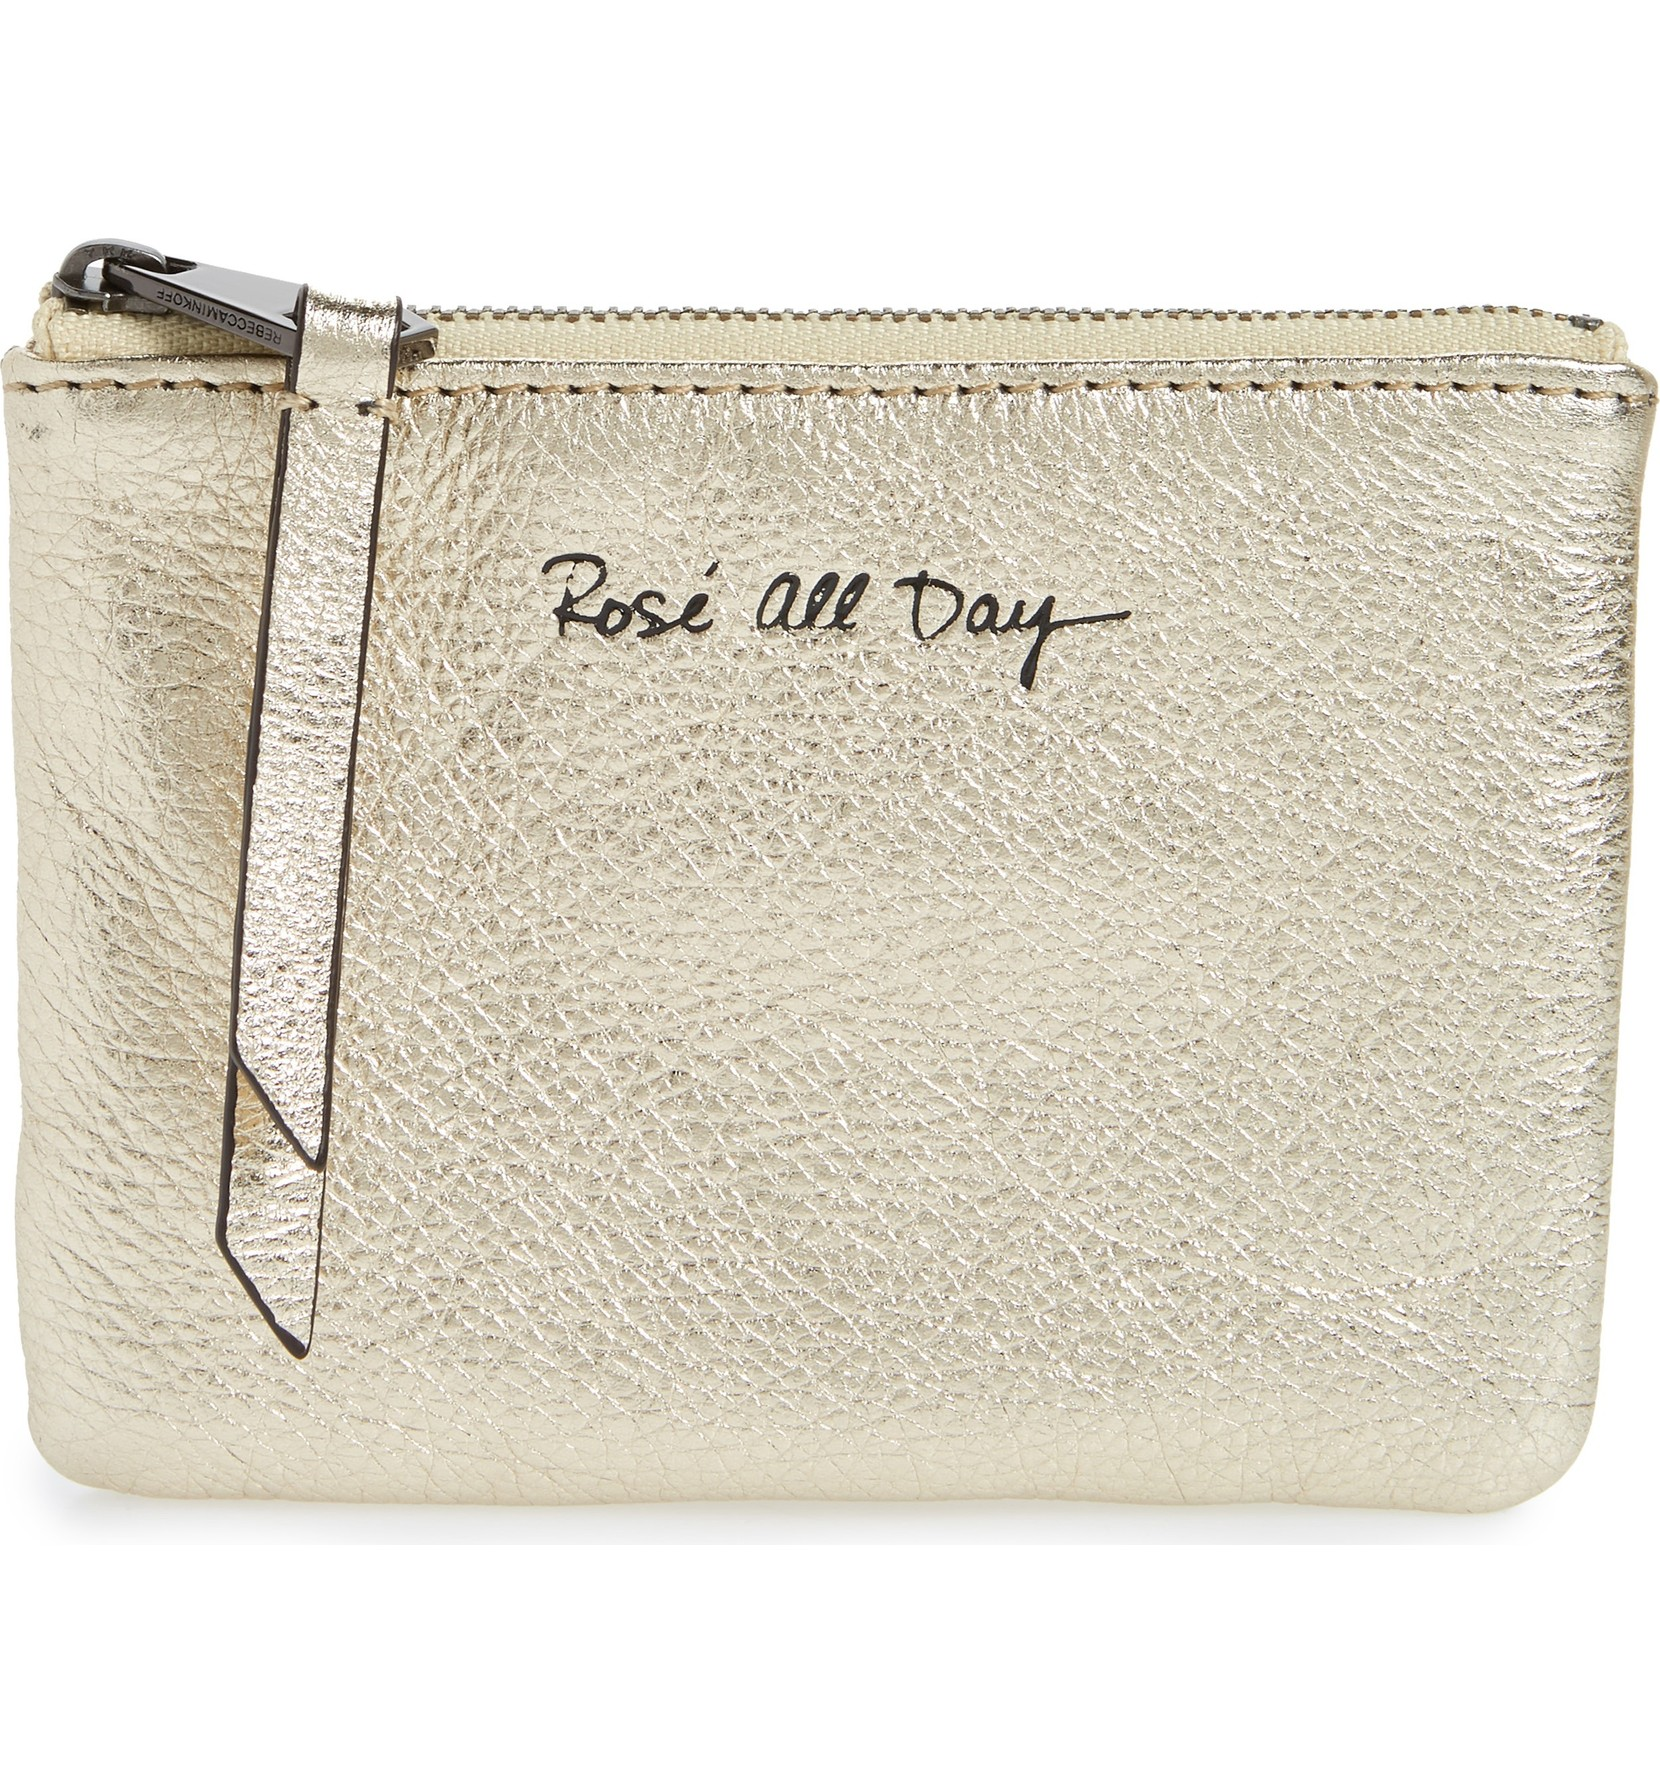 Betty Rosé All Day Leather Zip Pouch was $50 and is now $33.49. Indulge in this chic metallic-leather zip pouch stamped with a witty catchphrase and —naturally— done in a champagne hue.<p>(Image: Nordstrom)</p>